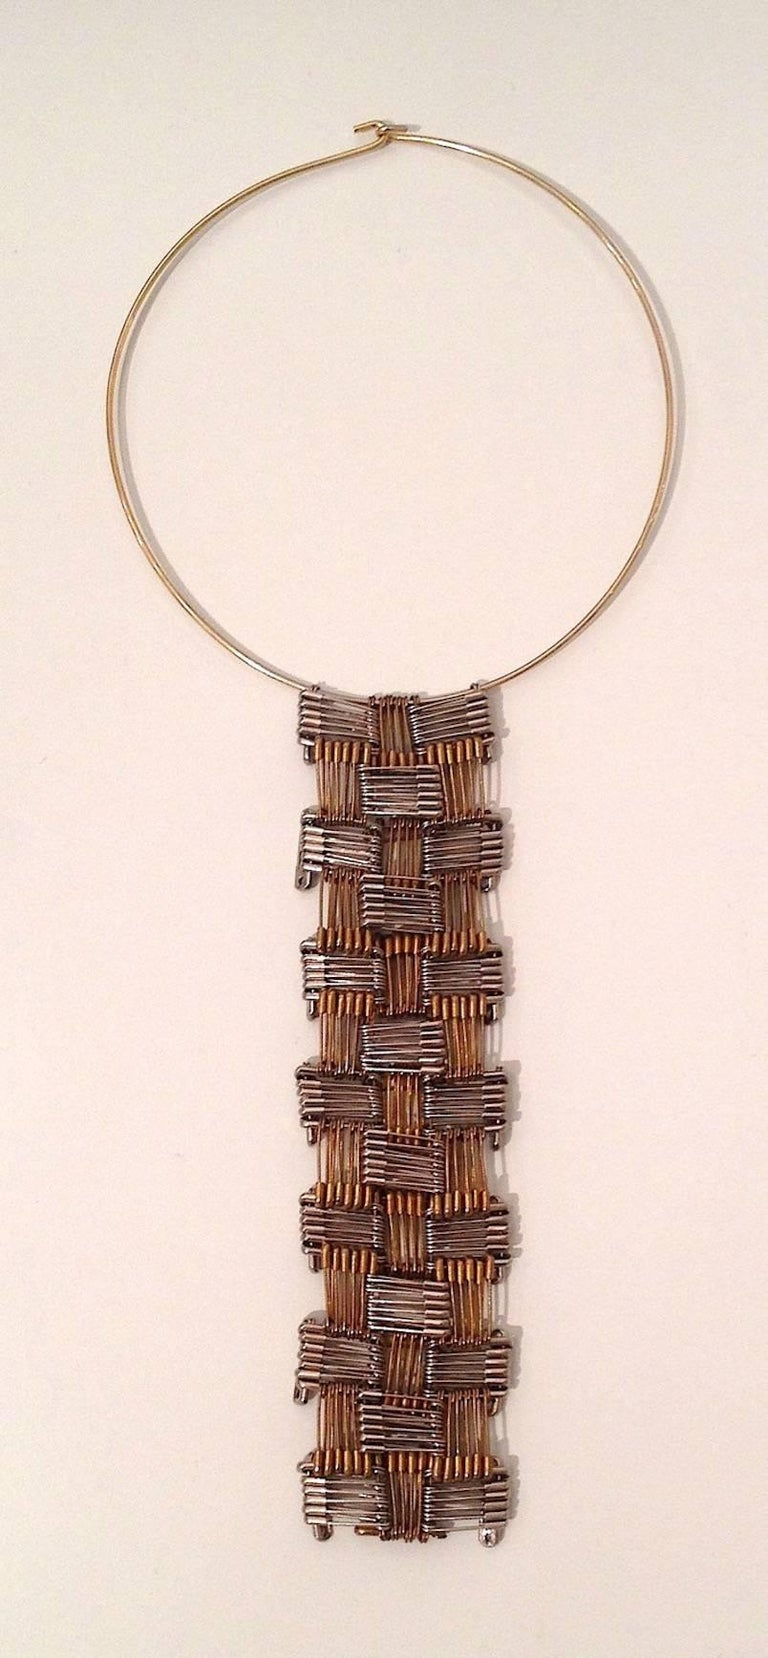 Tamiko Kawata, Tie Necklace, silver, brass, and nickel safety pin wearable art - Art by Tamiko Kawata